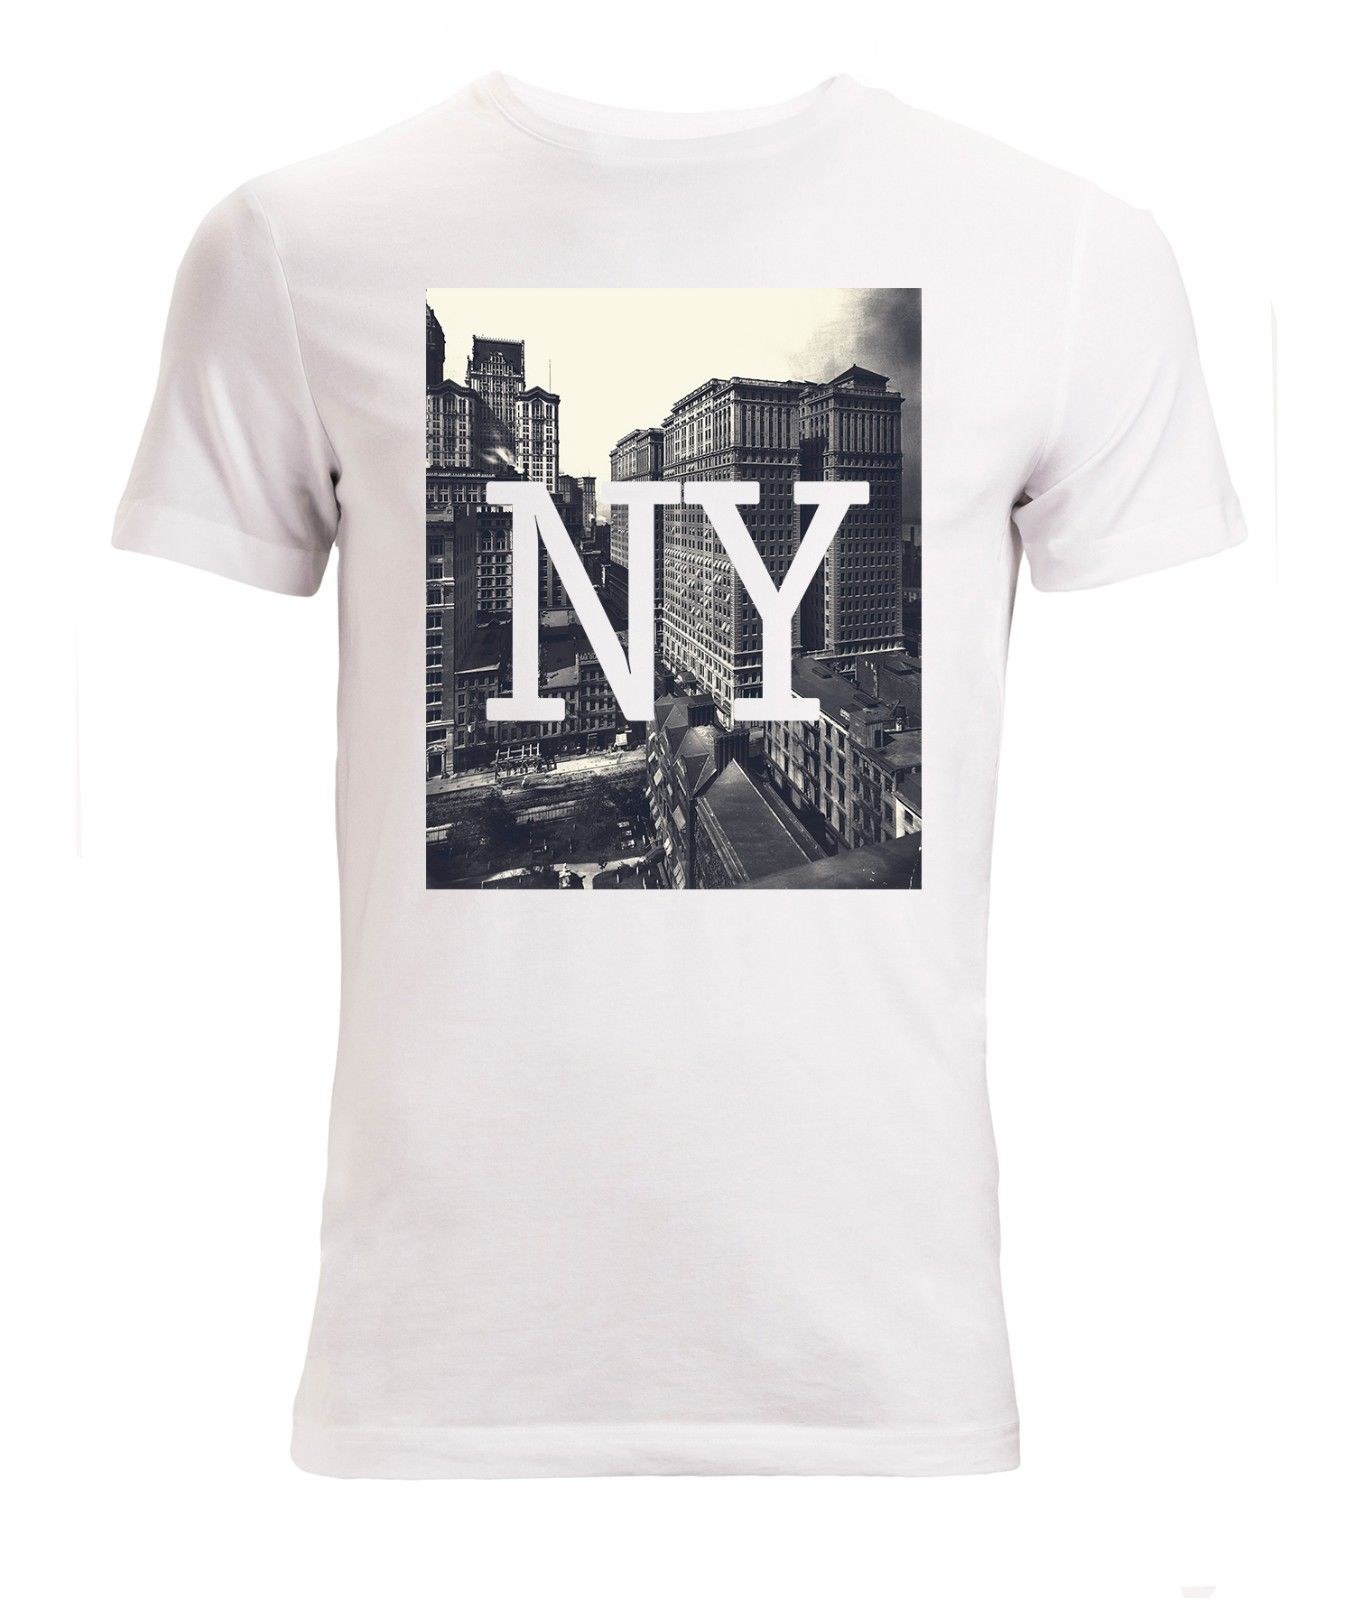 Gildan NY New York Skyscrapers Styled Art mens (womans available) t shirt white top